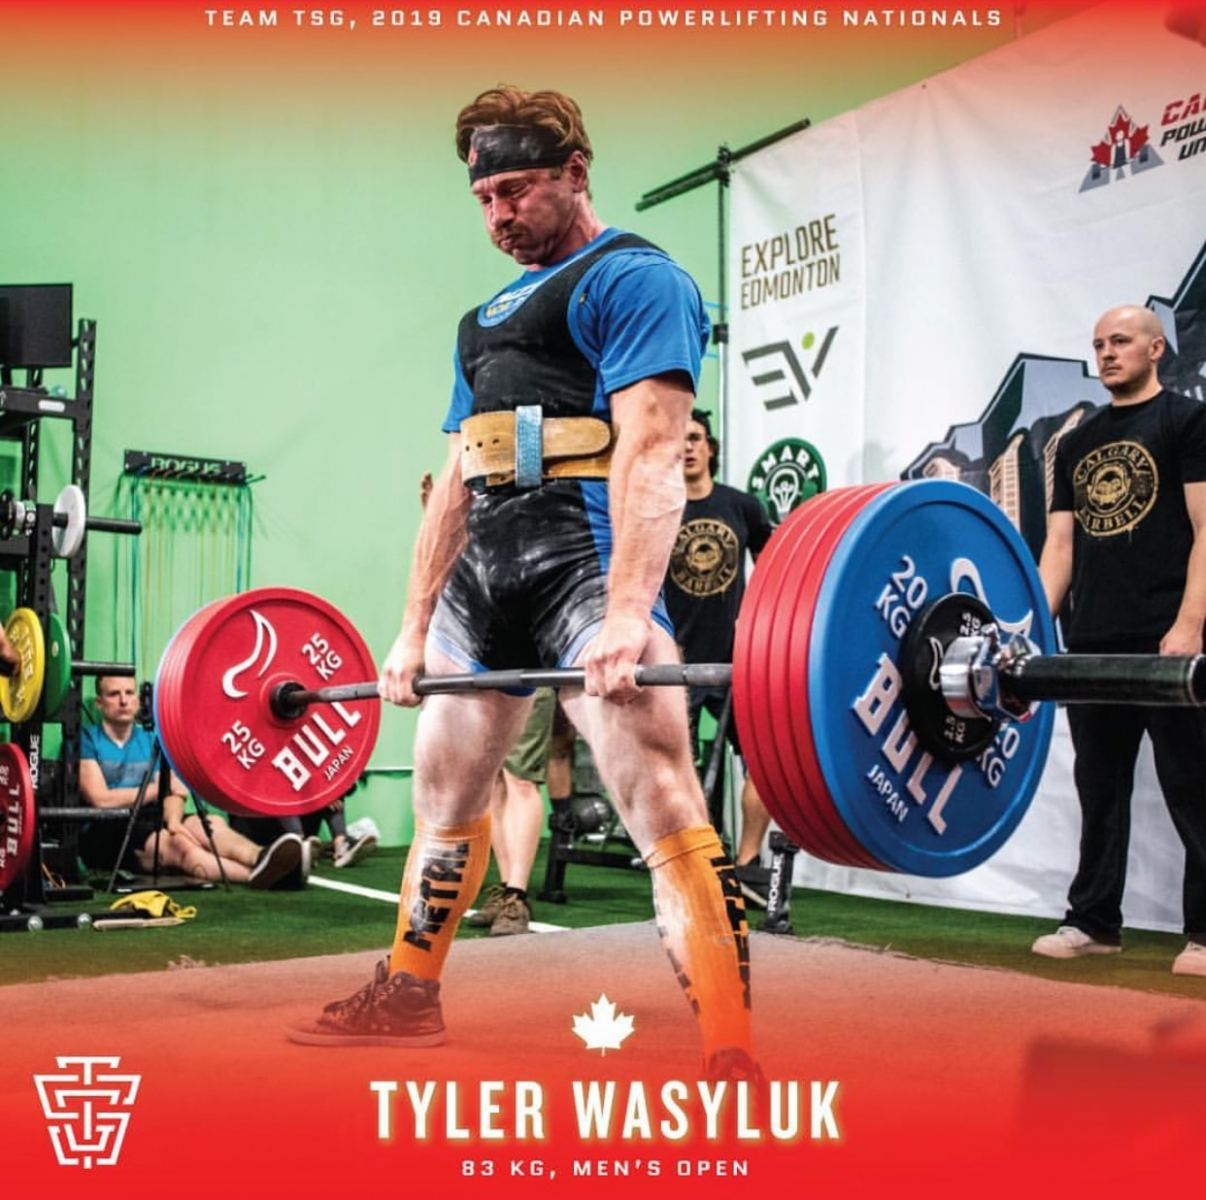 CPU Nationals 2019 Tyler Wasyluk